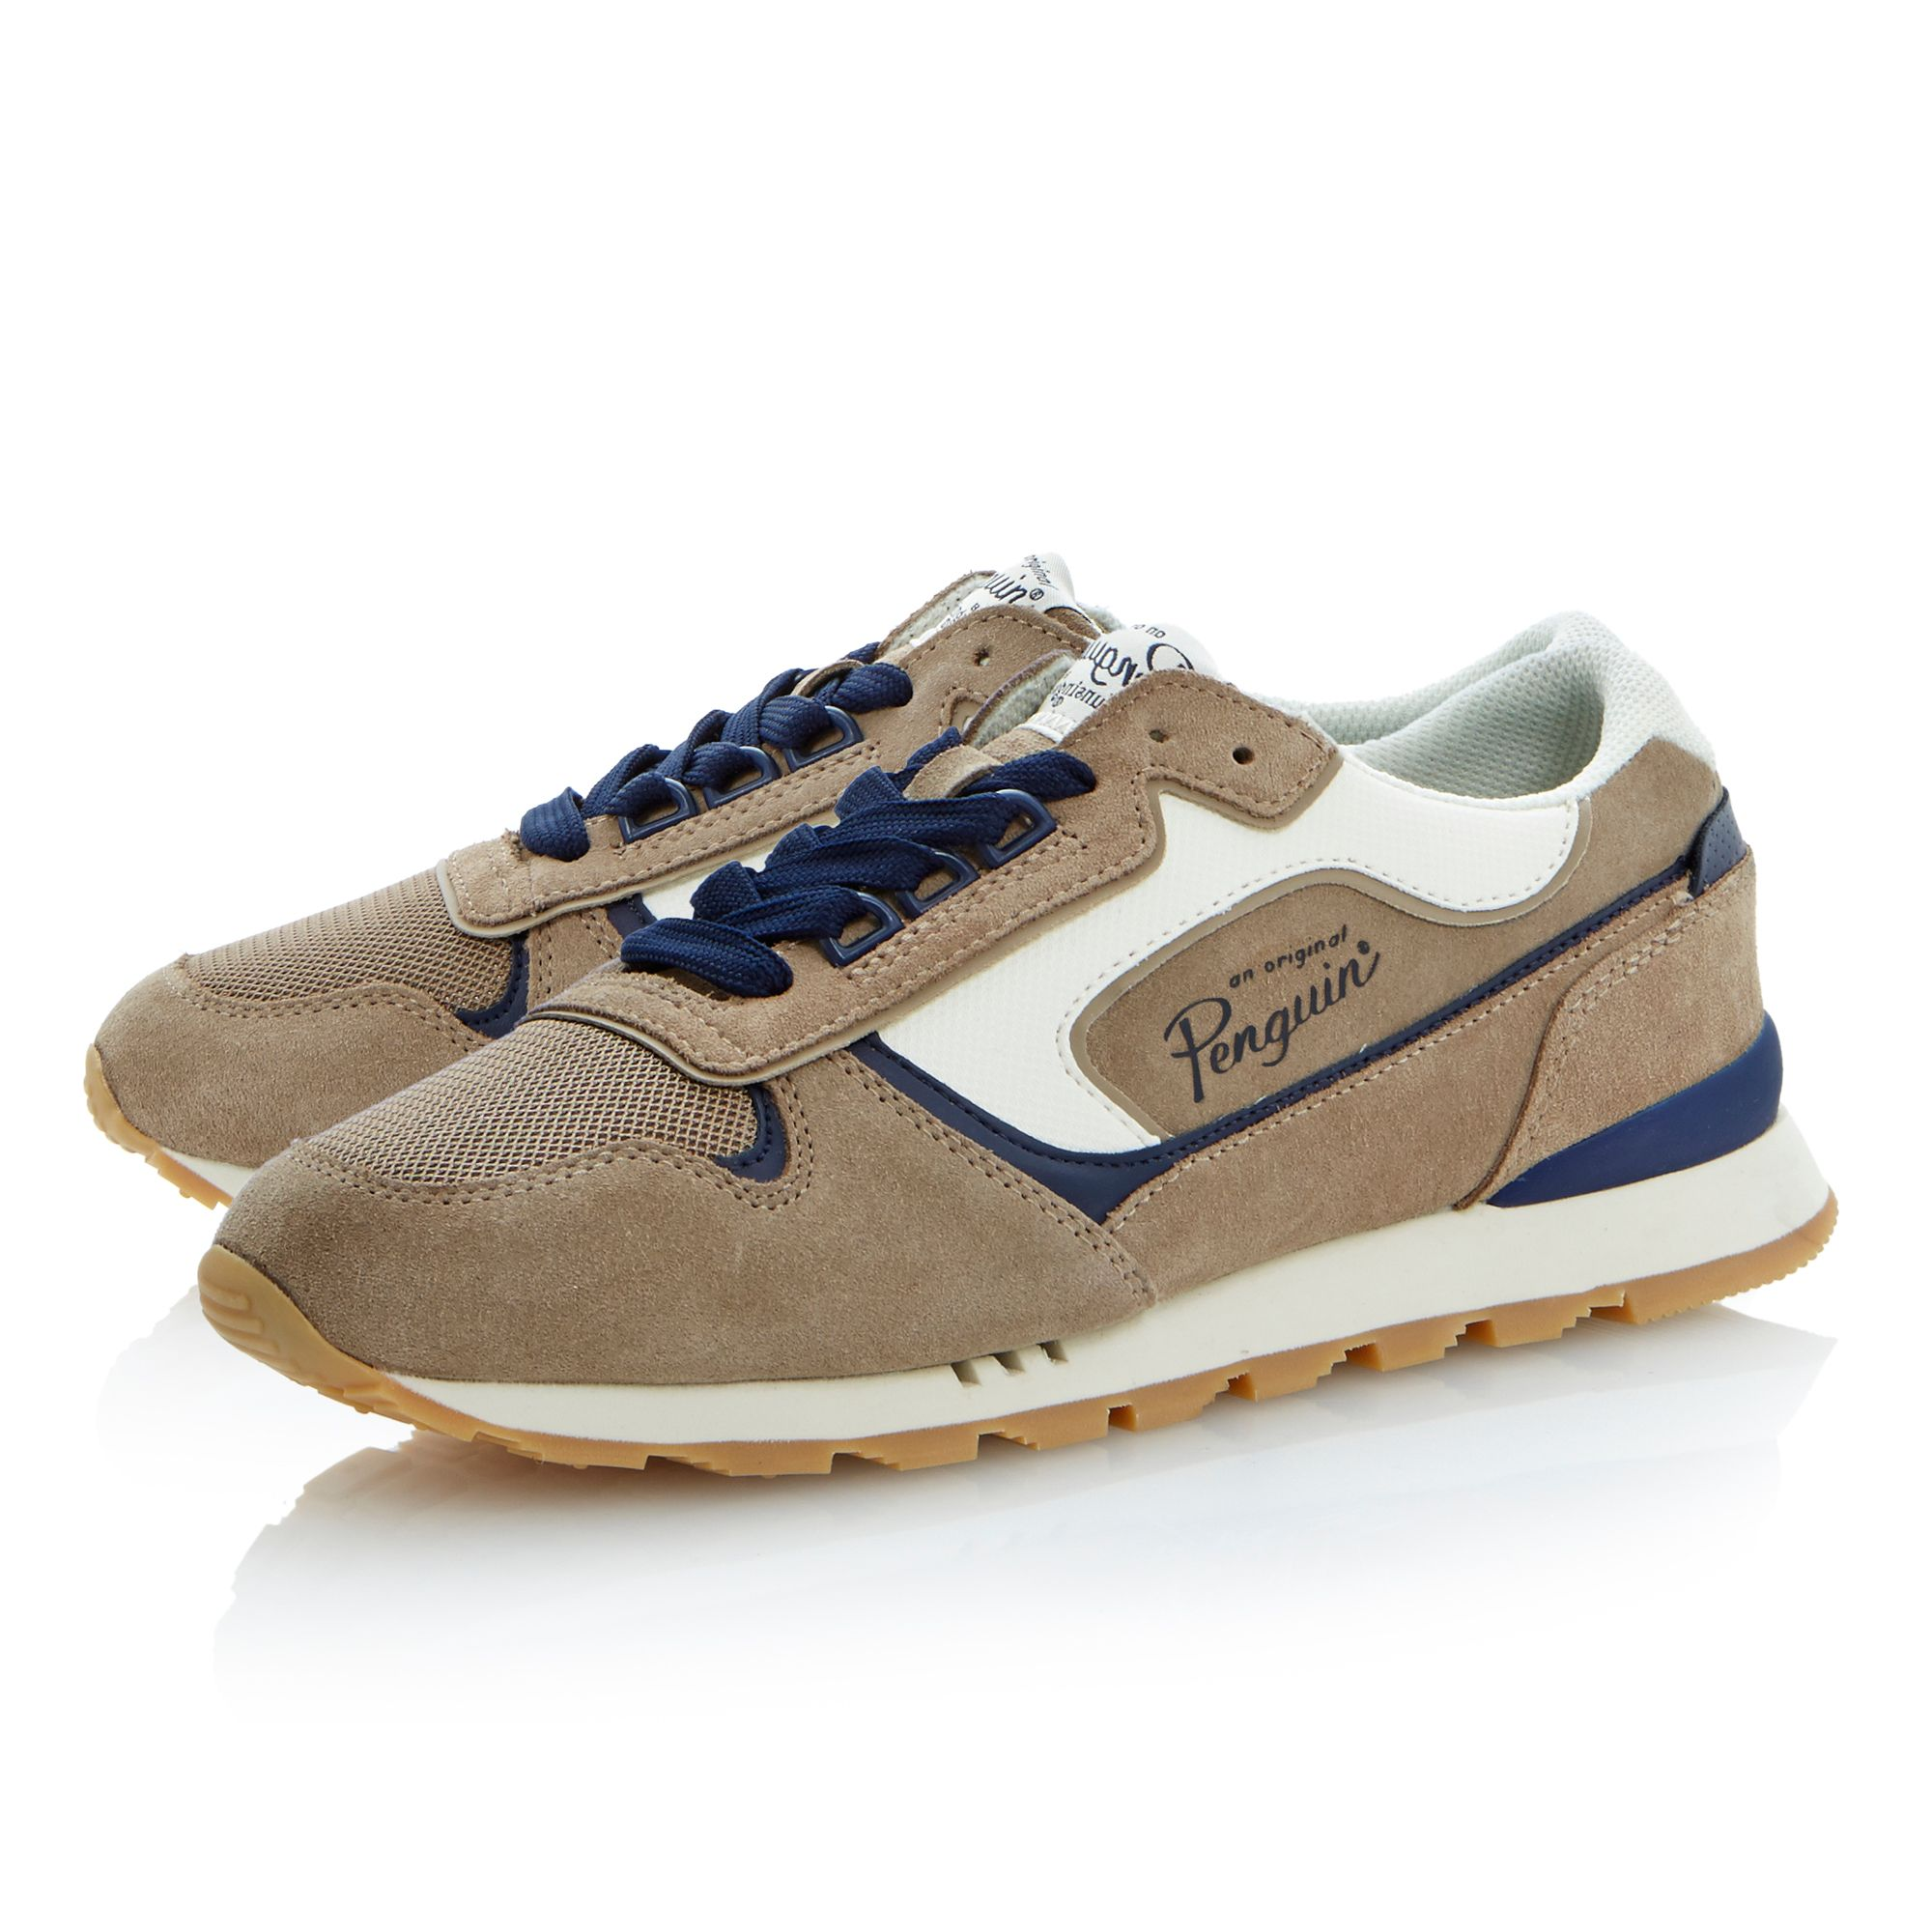 Foxtrot lace up runner trainers